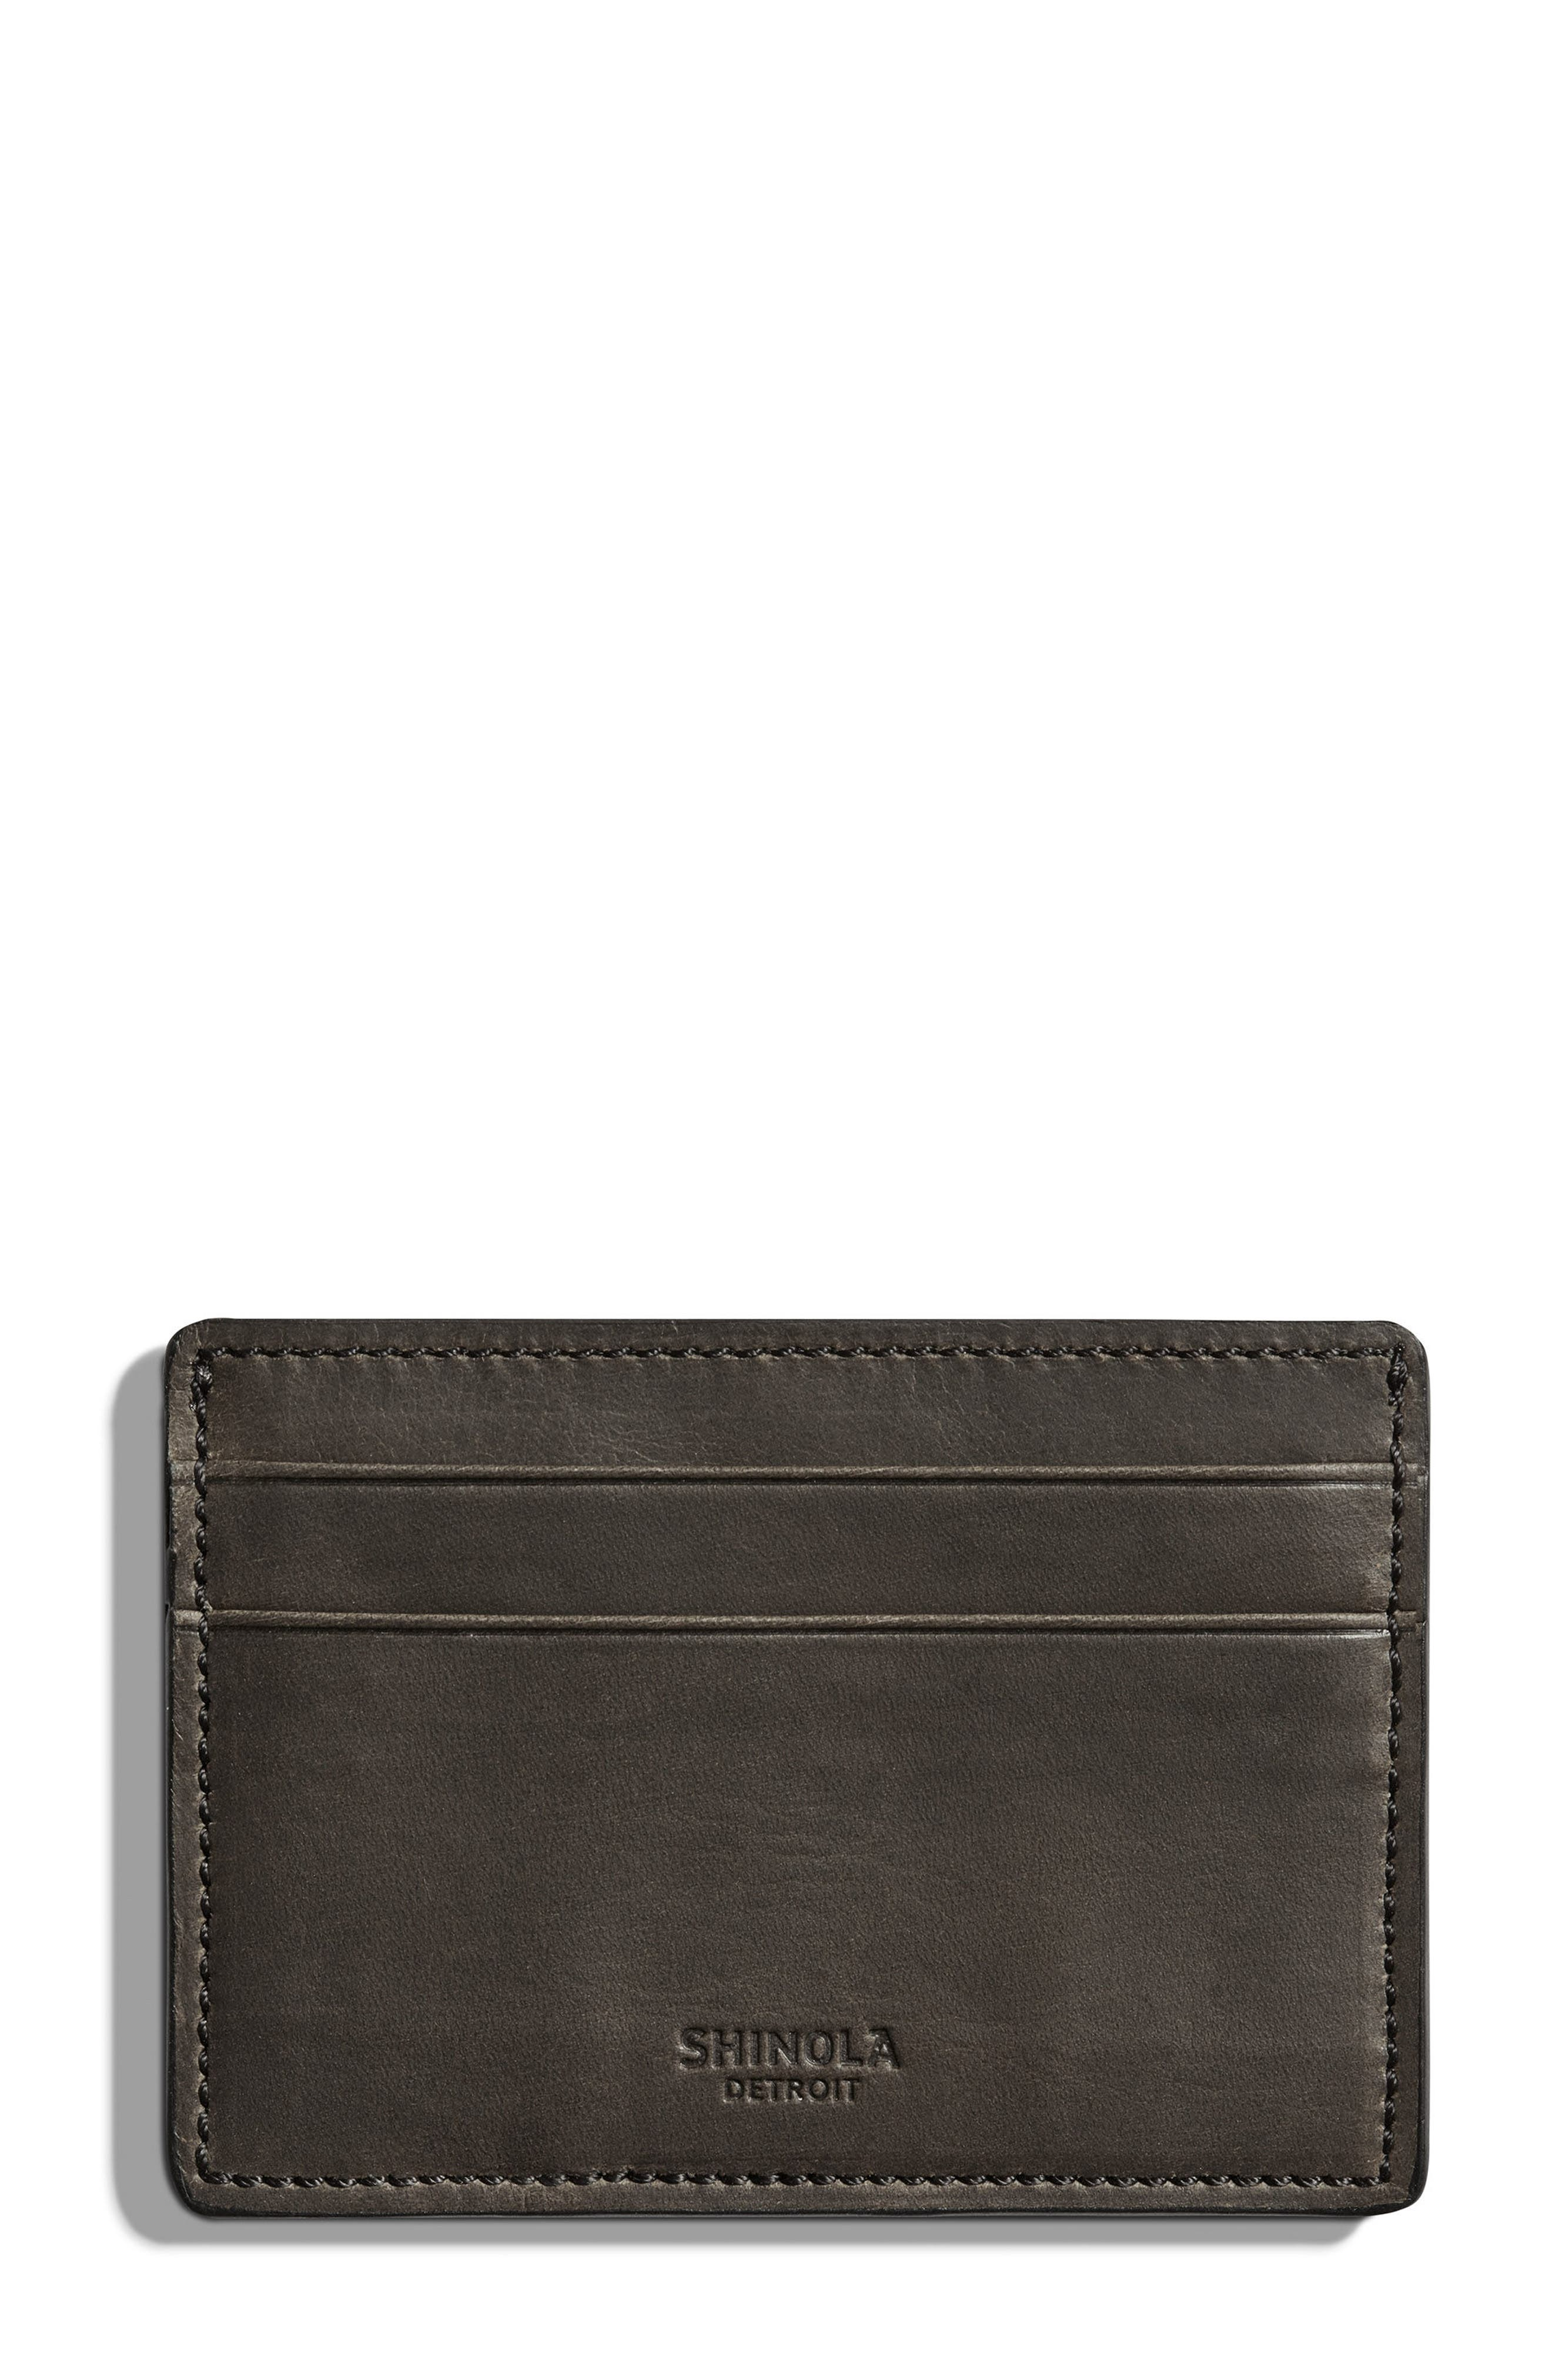 Leather Card Case,                             Main thumbnail 1, color,                             Charcoal